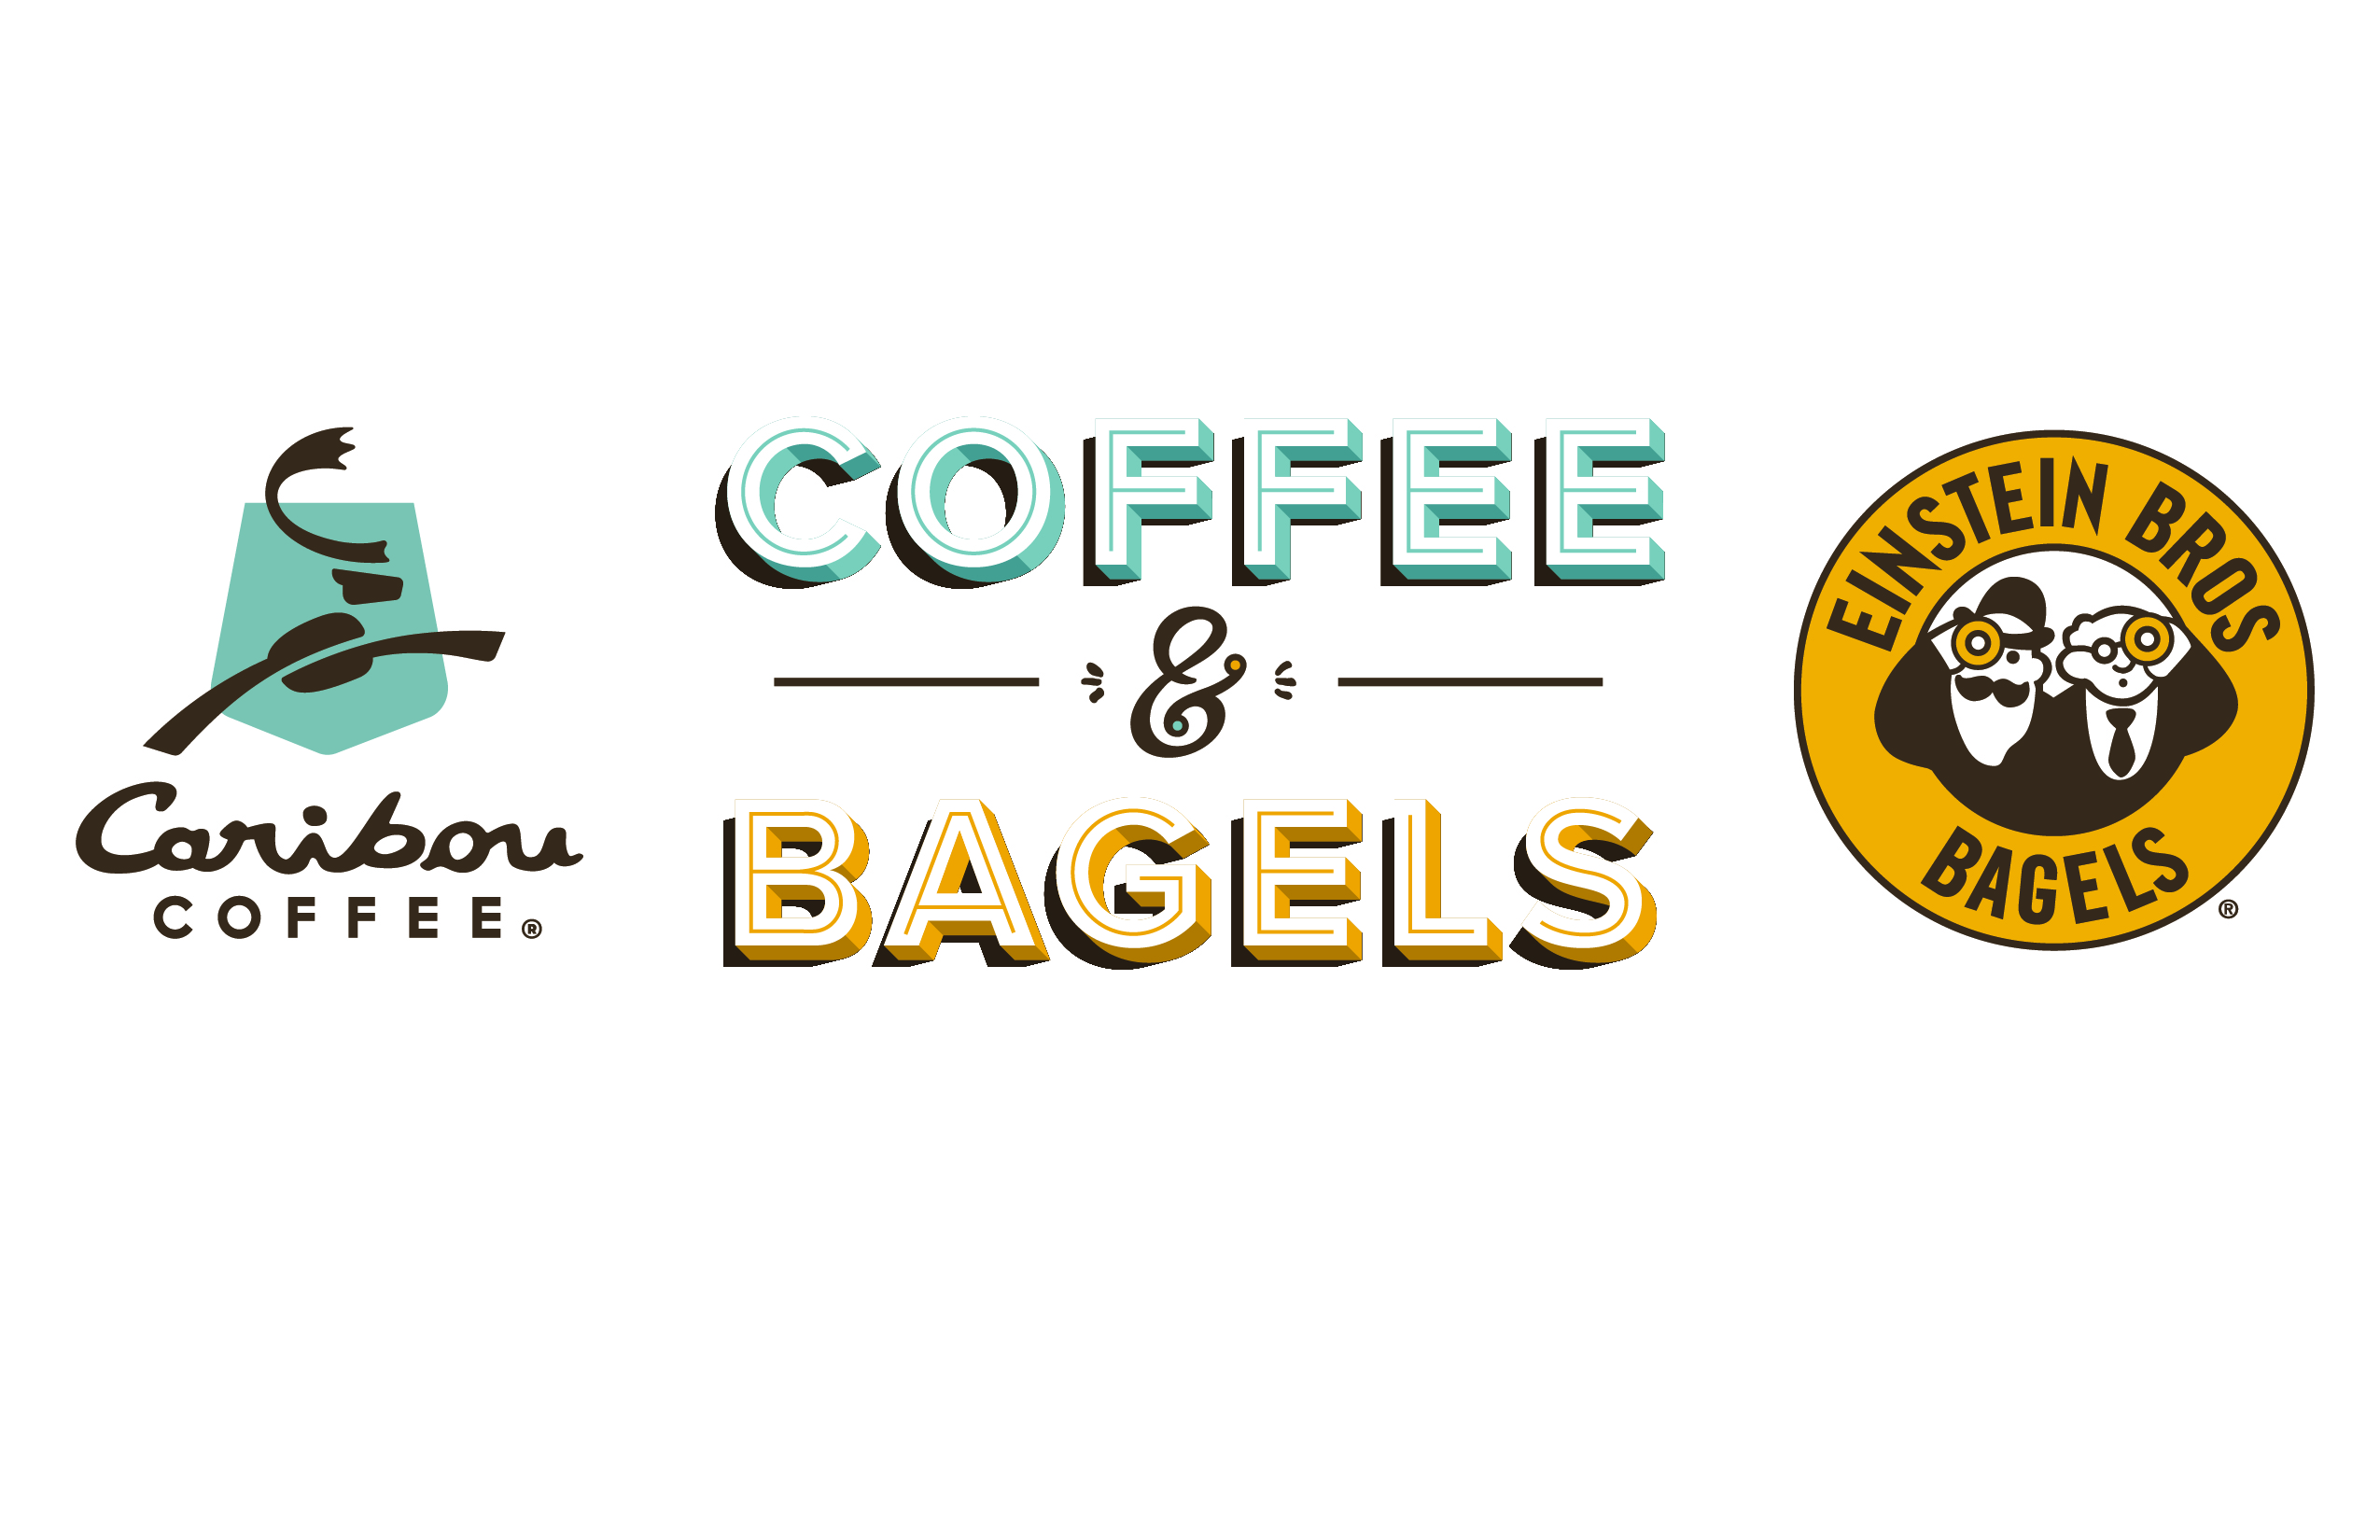 Caribou Coffee & Einstein Brothers Bagels Logo